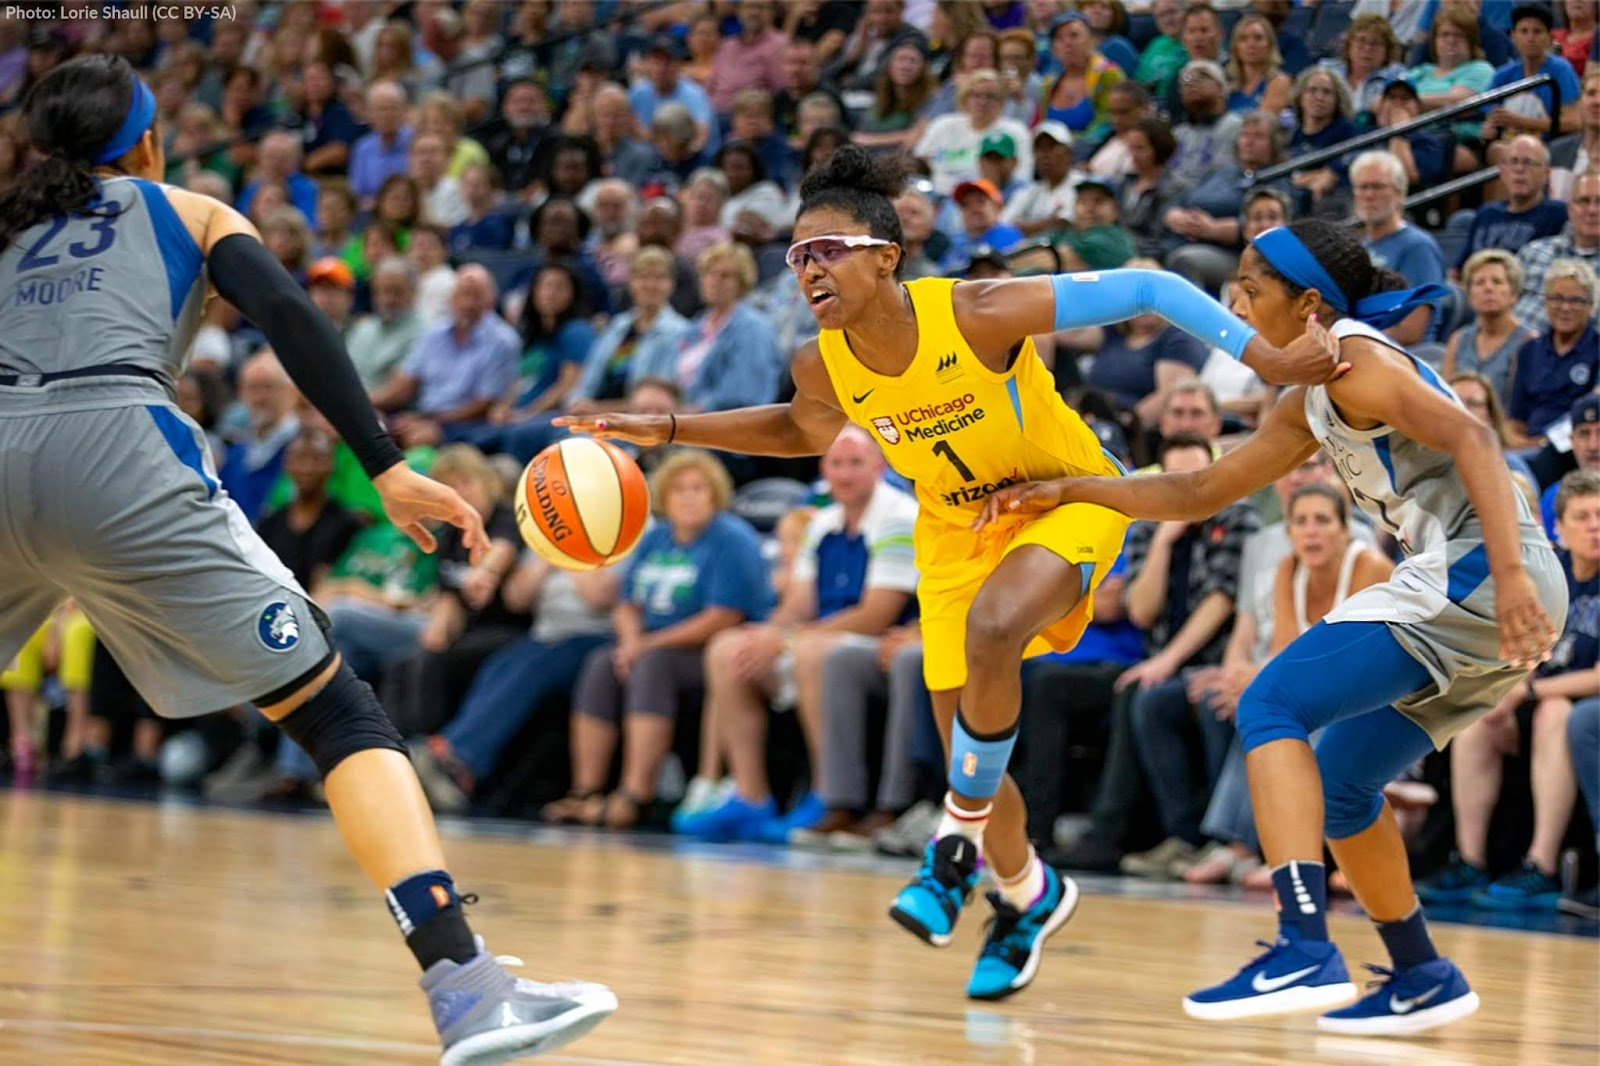 DeShields struggled for years with distorted vision caused by keratoconus even as she played basketball at a world-class level.